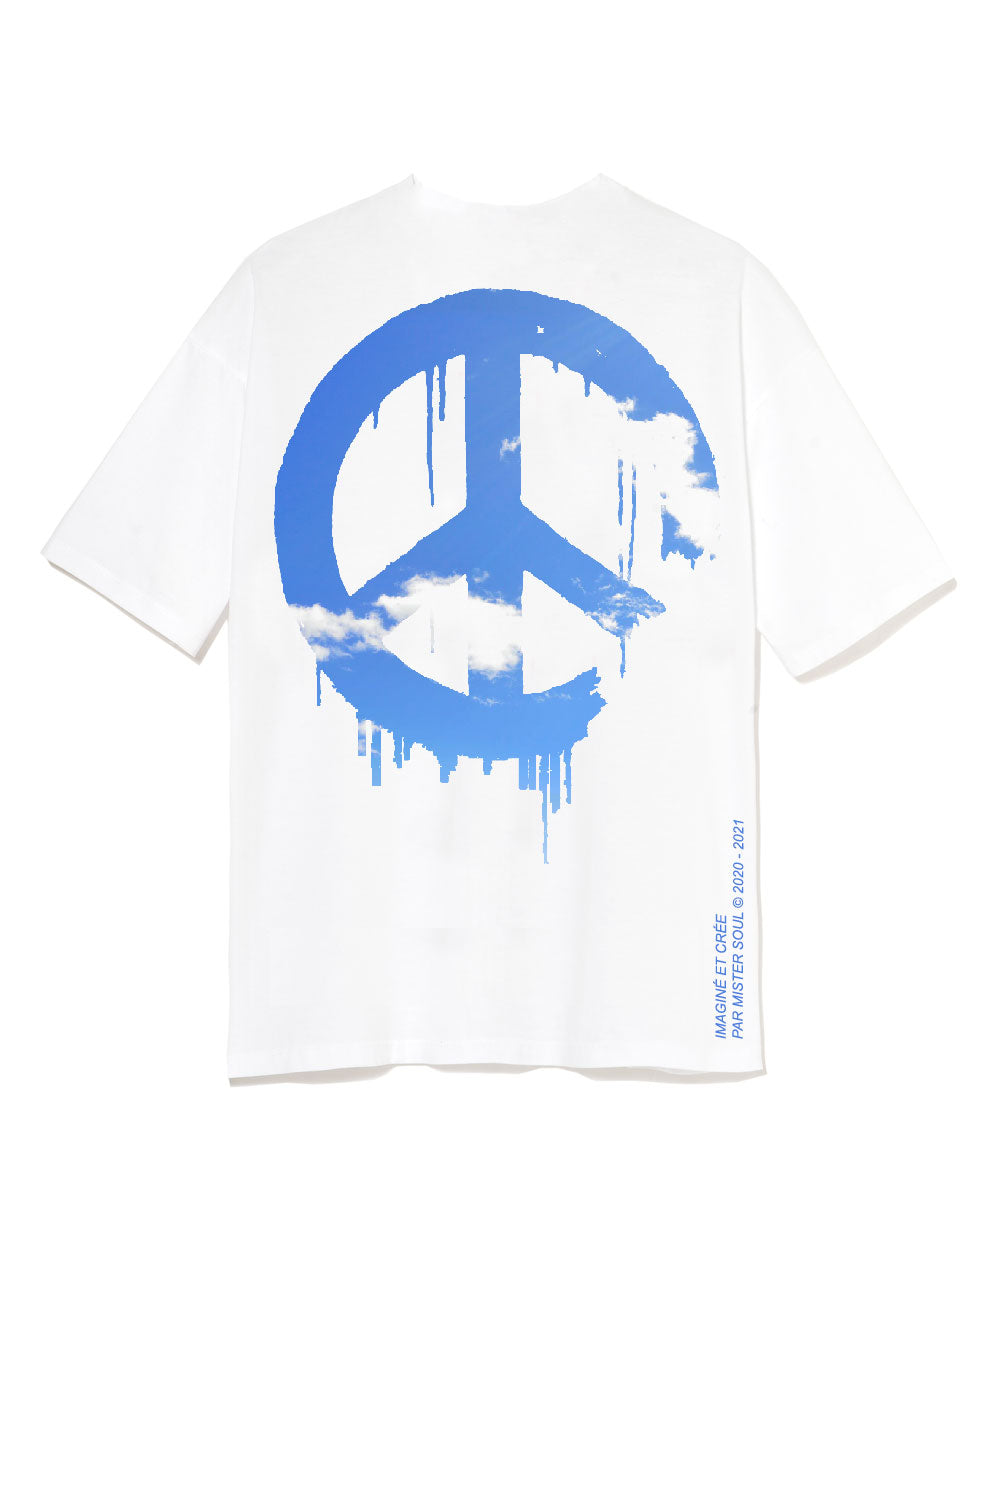 T-SHIRT GRAPHIC - PEACE & FREEDOM BLUE SKY - LEROYAUME